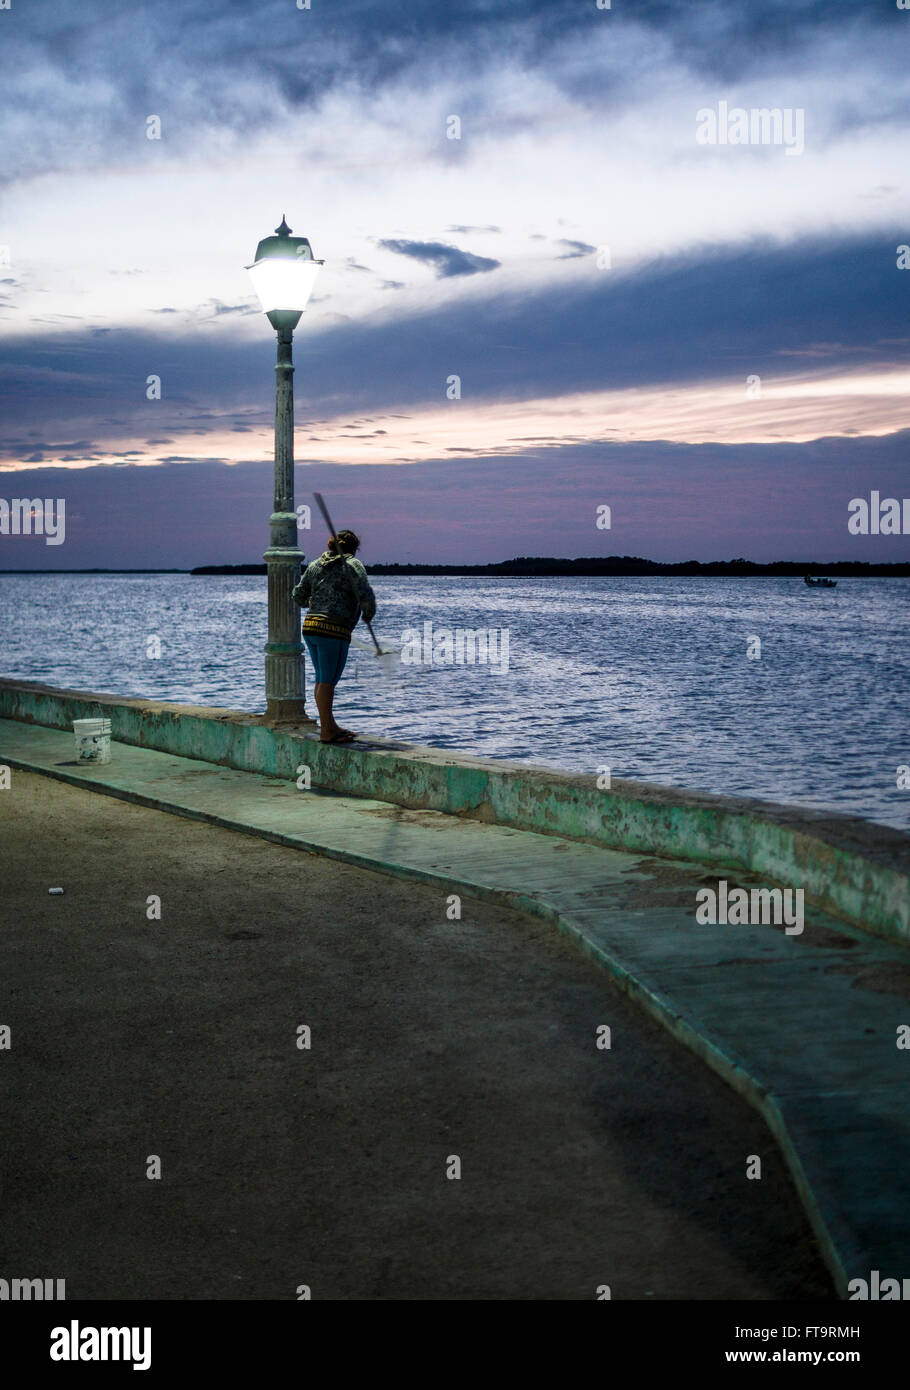 Scooping Shrimp at dusk on Sea Wall at Rio Lagartos. A street lamp glows with a sunset sky as a shrimp fisher rotates - Stock Image